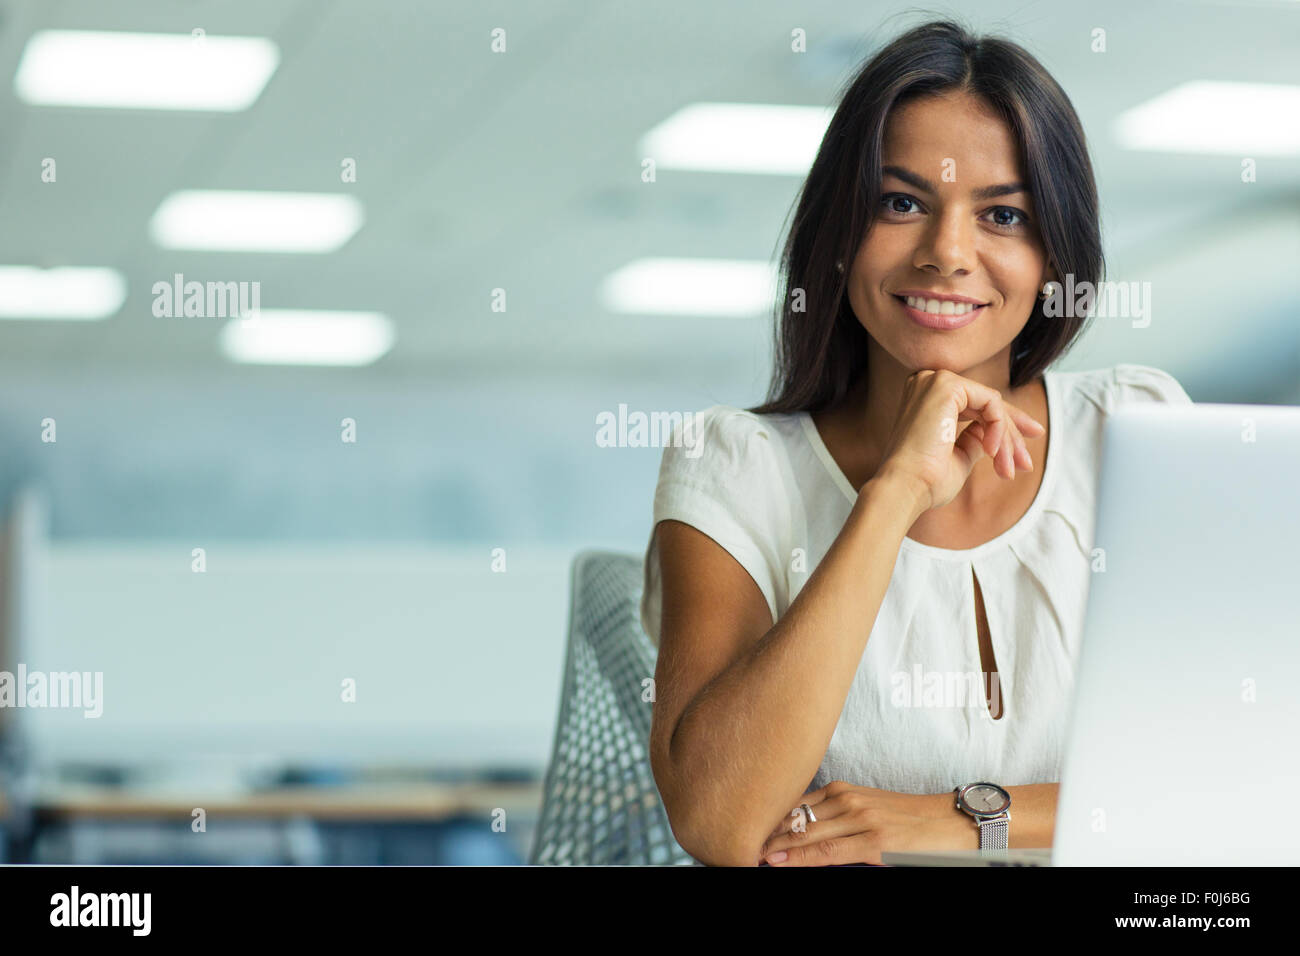 Portrait of a smiling businesswoman working in office Photo Stock